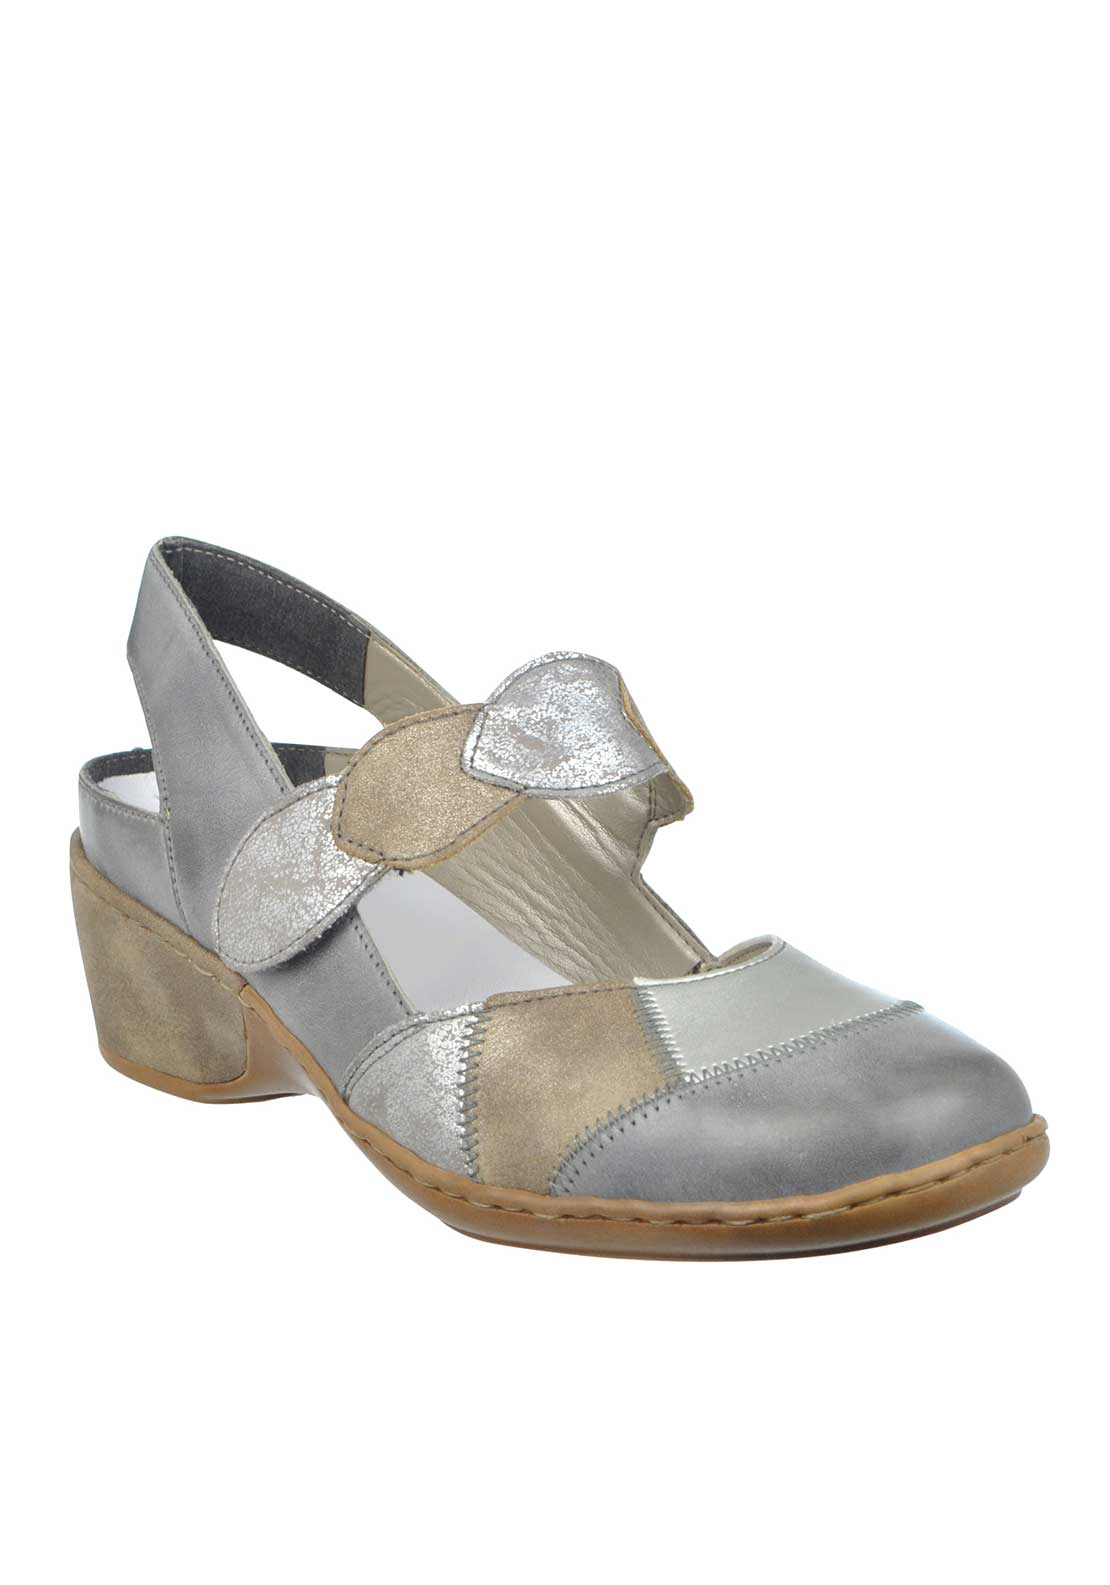 Rieker Womens Sling Back Leather Shoe, Grey